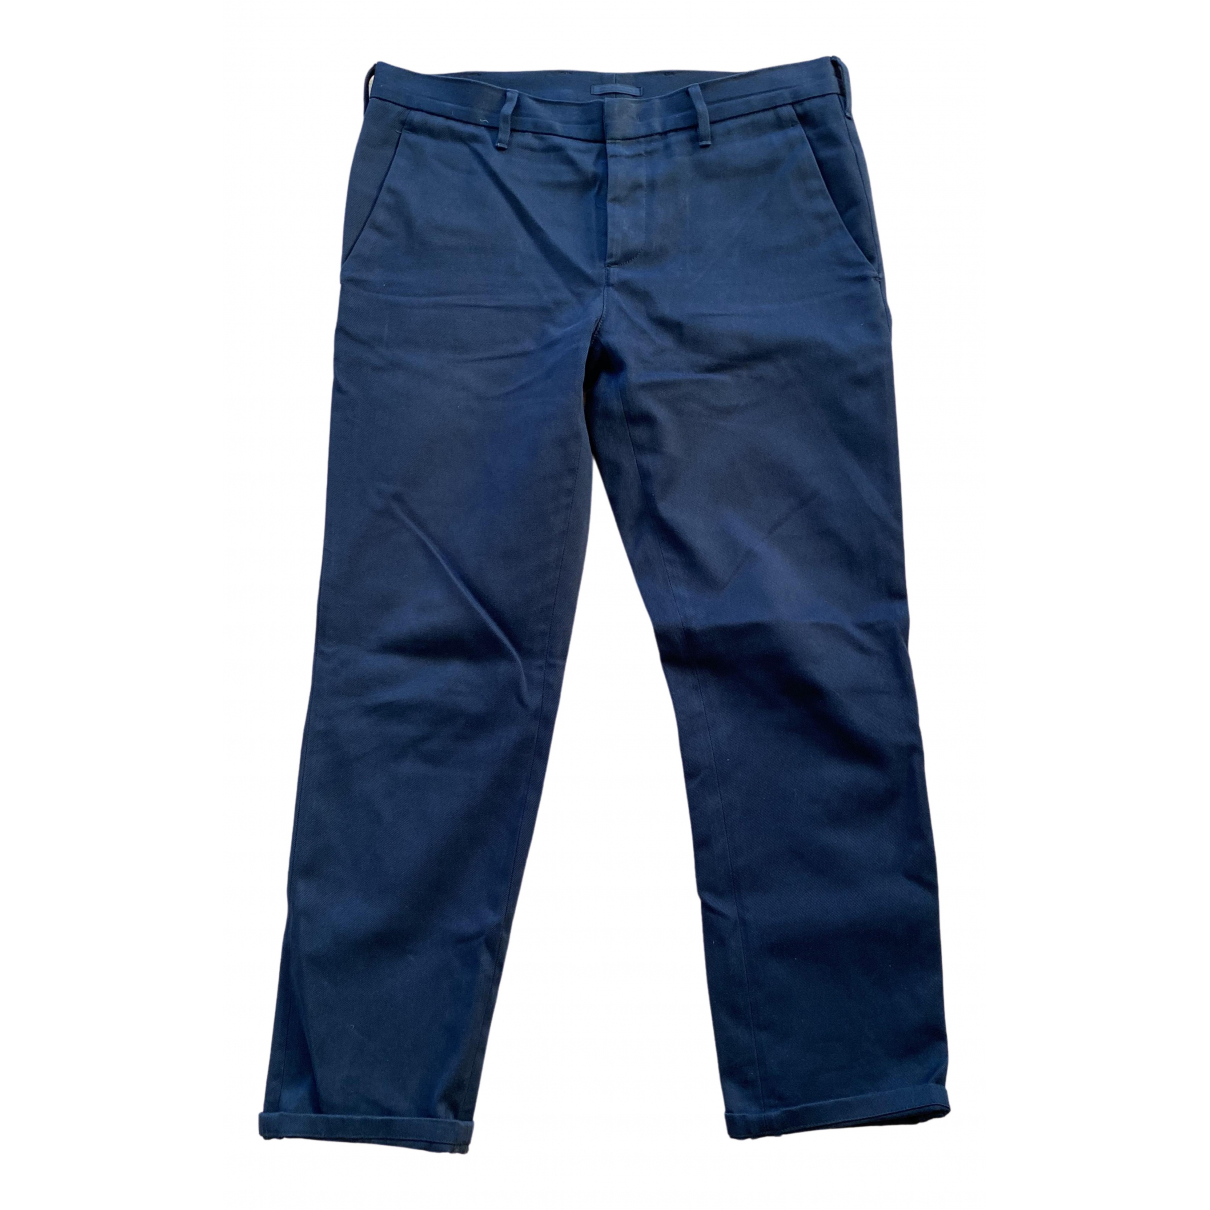 Prada \N Blue Cotton Trousers for Men 32 UK - US